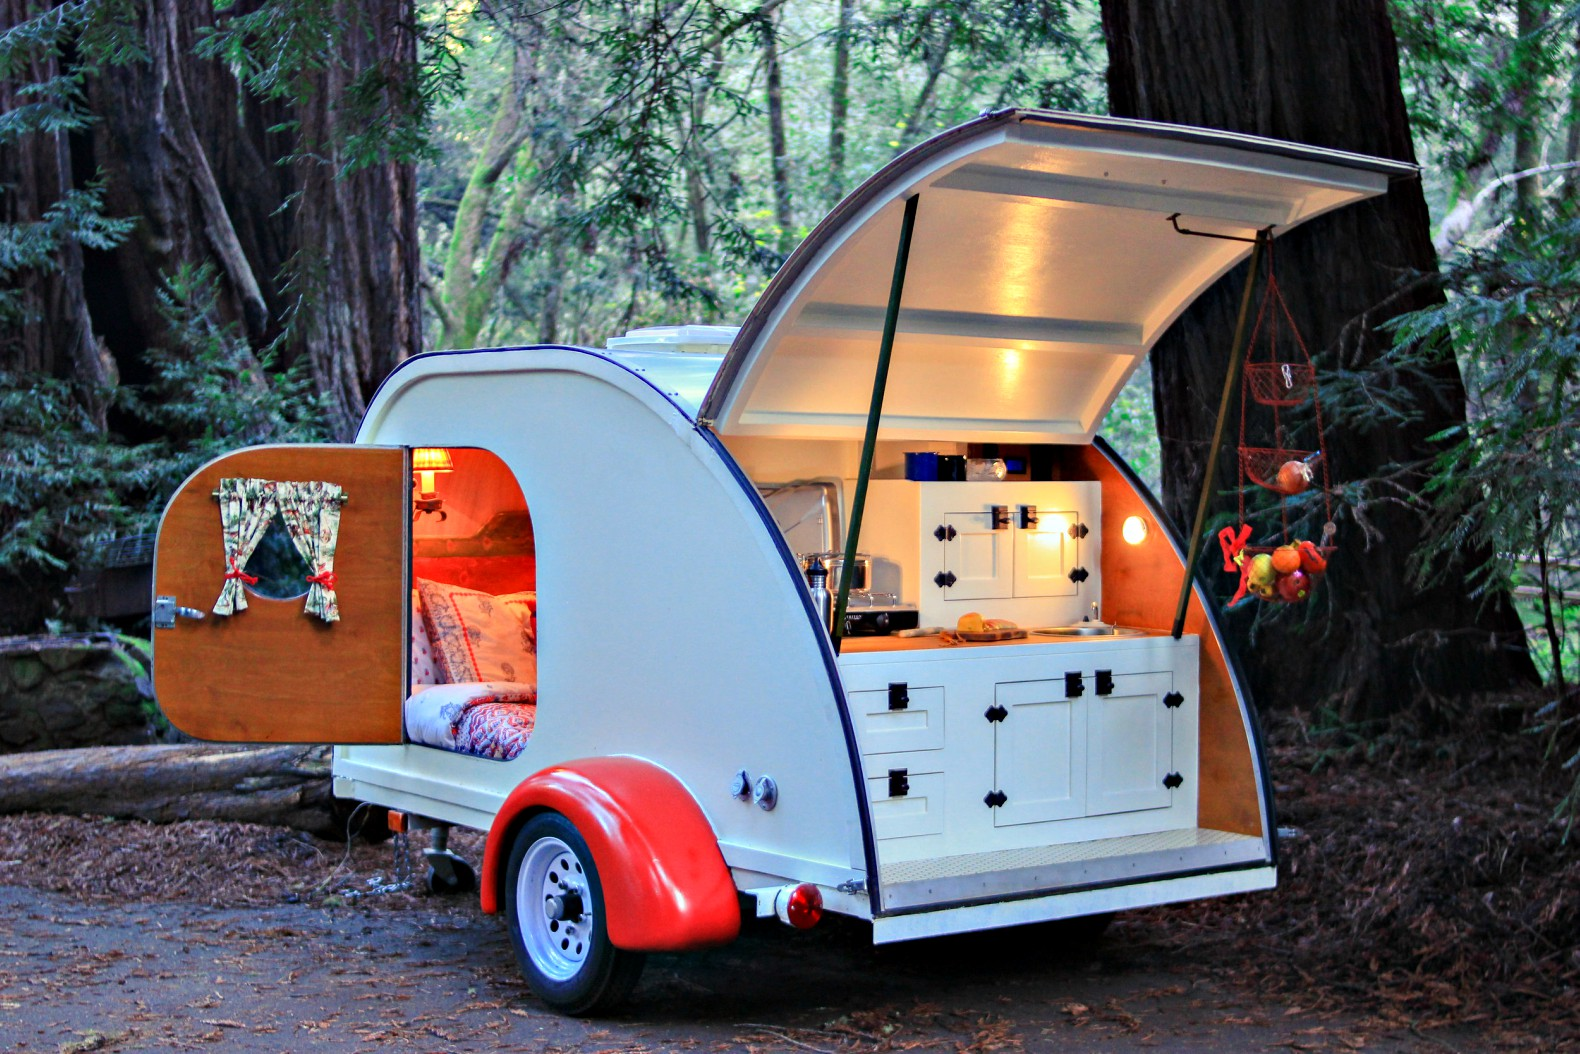 Now You Can Rent A Vintage Teardrop Camper For Weekend In The Woods